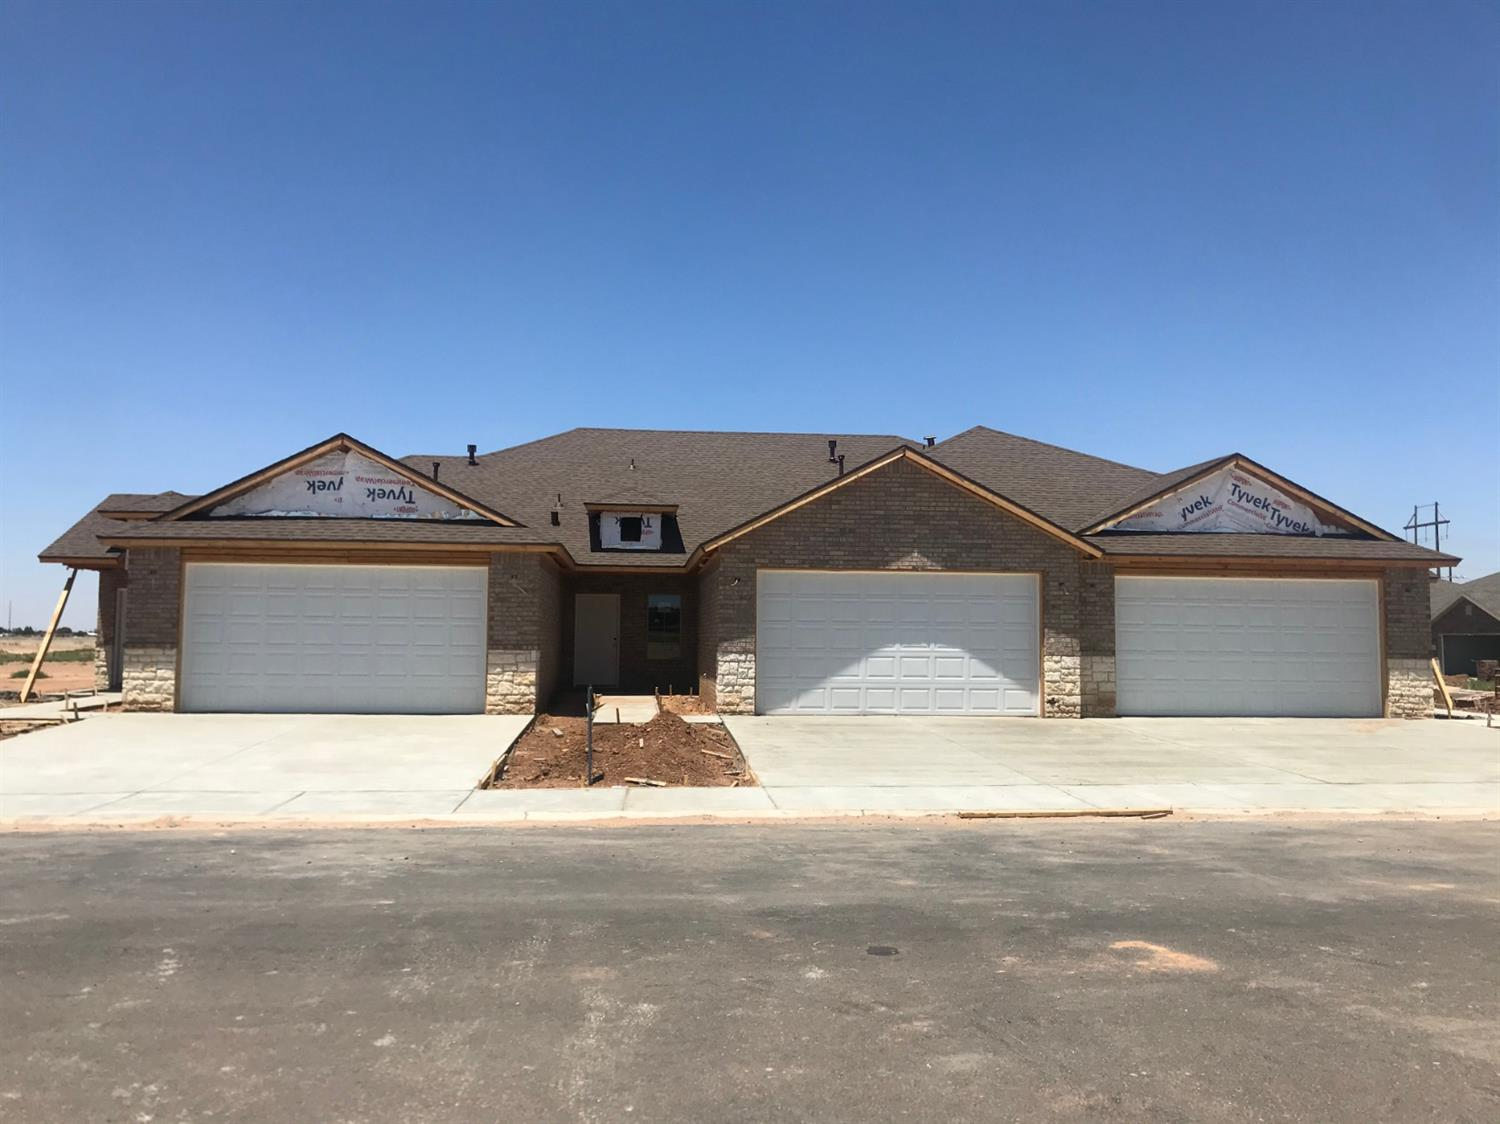 NEW CONSTRUCTION Townhomes to be completed Mid-July.2/2/2 Move-in ready! Granite Countertops, Vinyl plank floors with tile in restrooms and carpet in bedrooms. Metal facia siding, fenced backyard with sod and sprinkler system, artificial turf in front yard. These townhomes are a great location close to TTU, Medical District, restaurants and shopping!! Come and take a look today!!